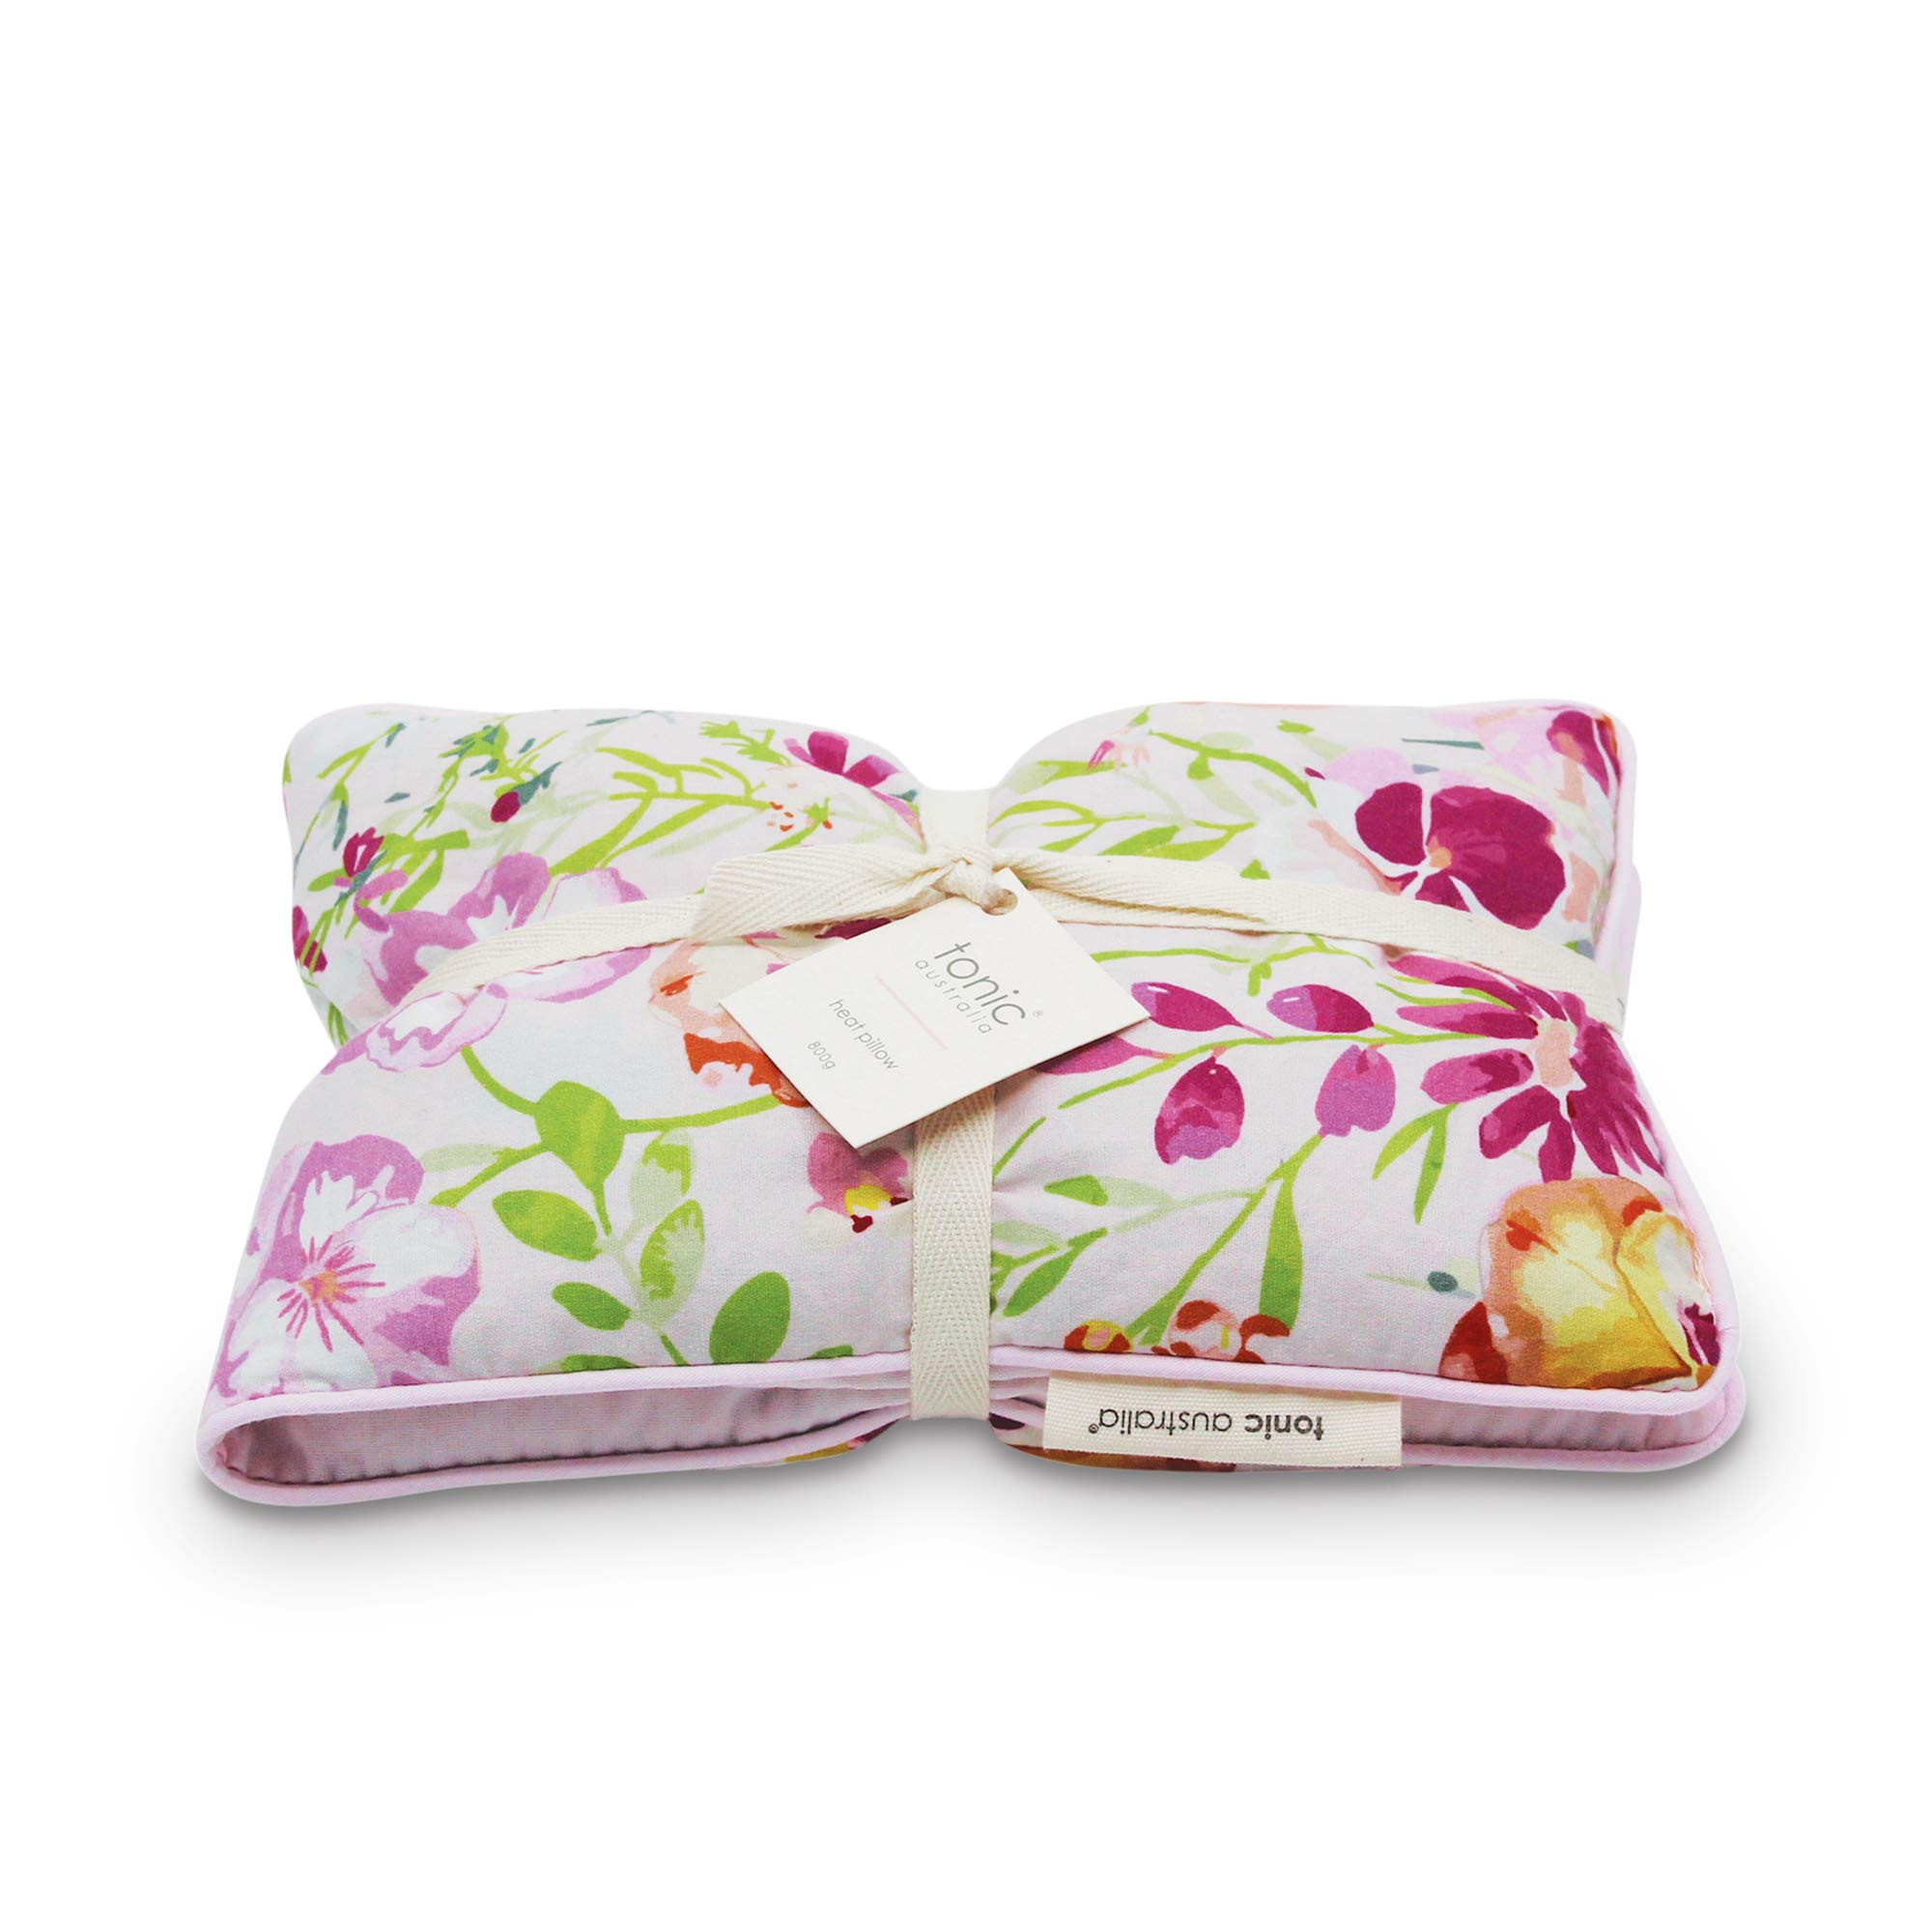 Tonic Australia Stress Relief Heat Pillow - Morning Bloom - Lavender by Tonic Australia